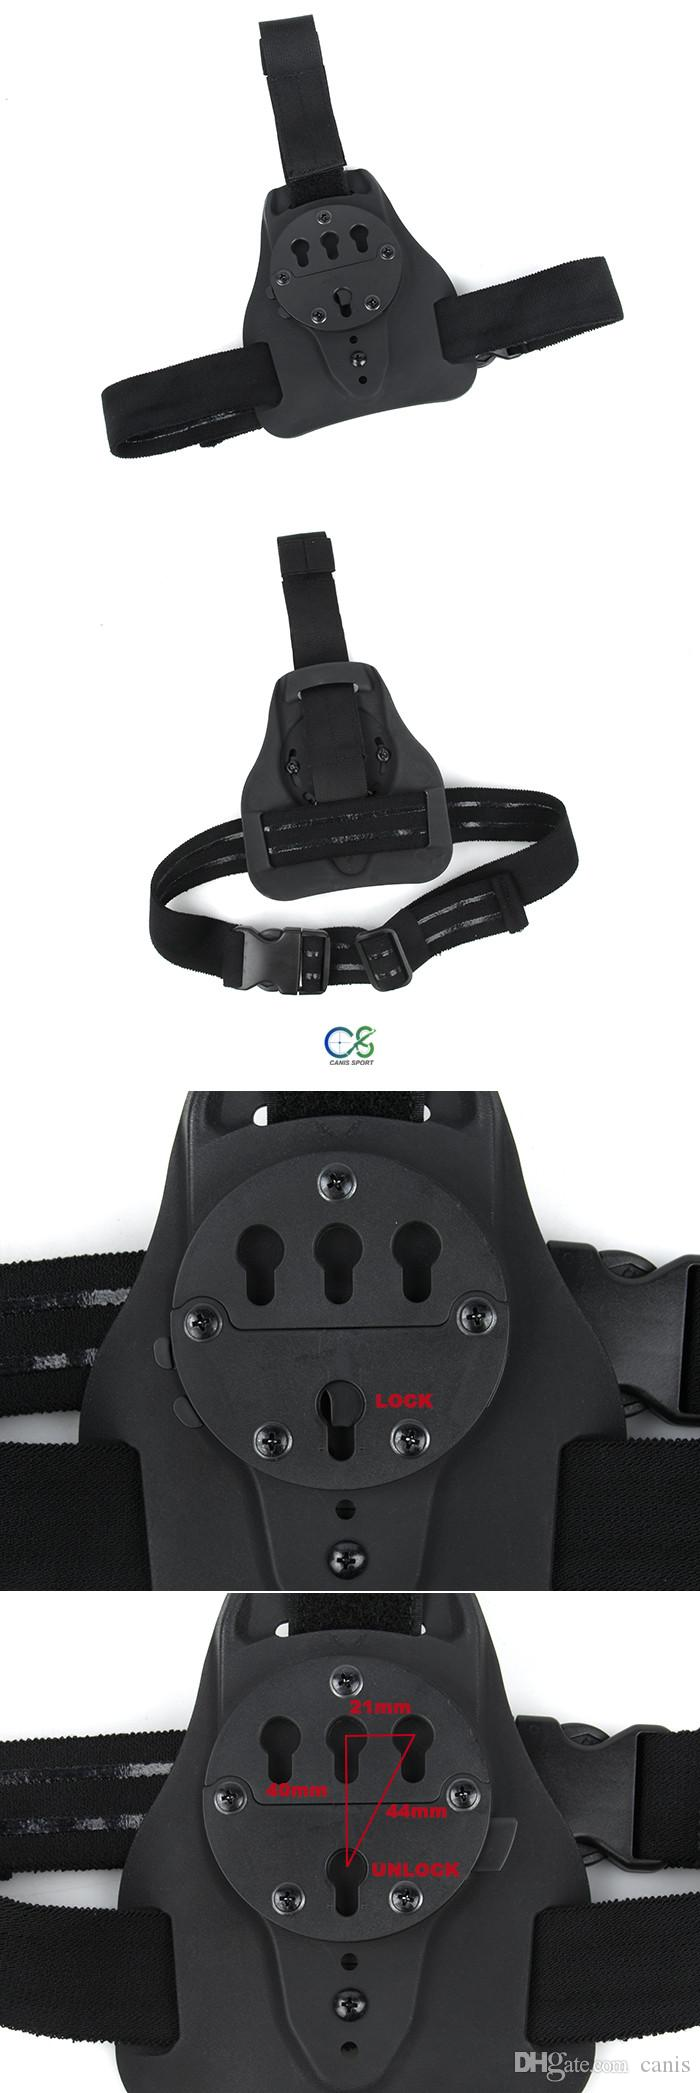 Hunting Tactical Single Singolo Pannello Holster GC Montare il sistema Accesso rapido alle gambe appese a CL7-0080